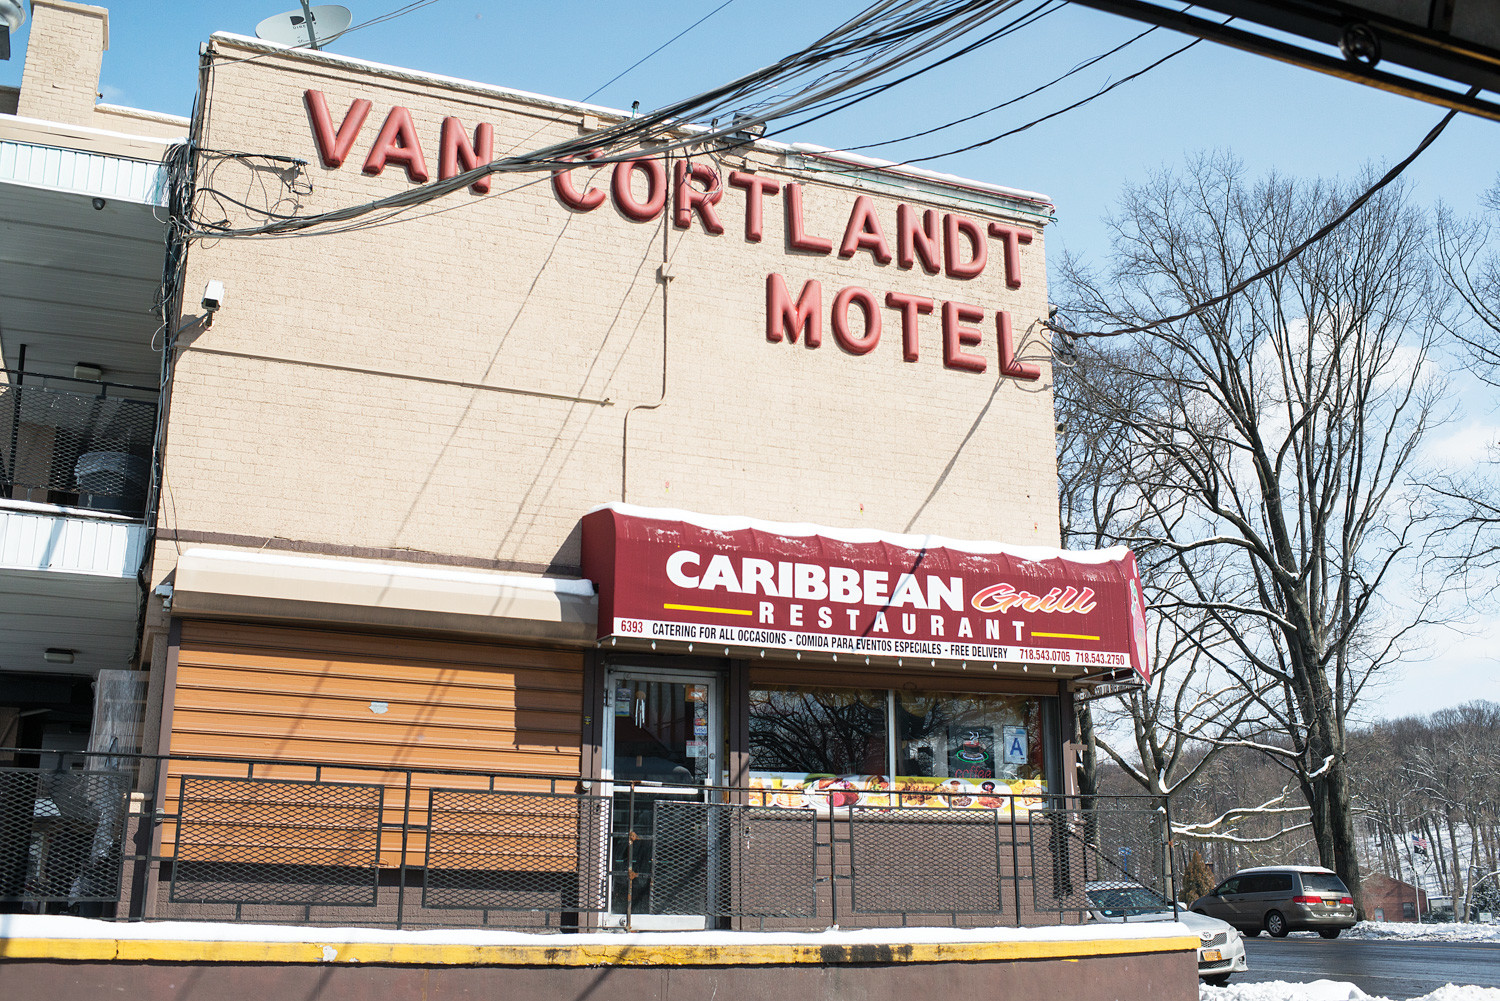 Police are searching for three women and two hooded, armed bandits who reportedly brandished a firearm and made off with $96,000 they took from a man staying at the Van Cortlandt Motel in North Riverdale.